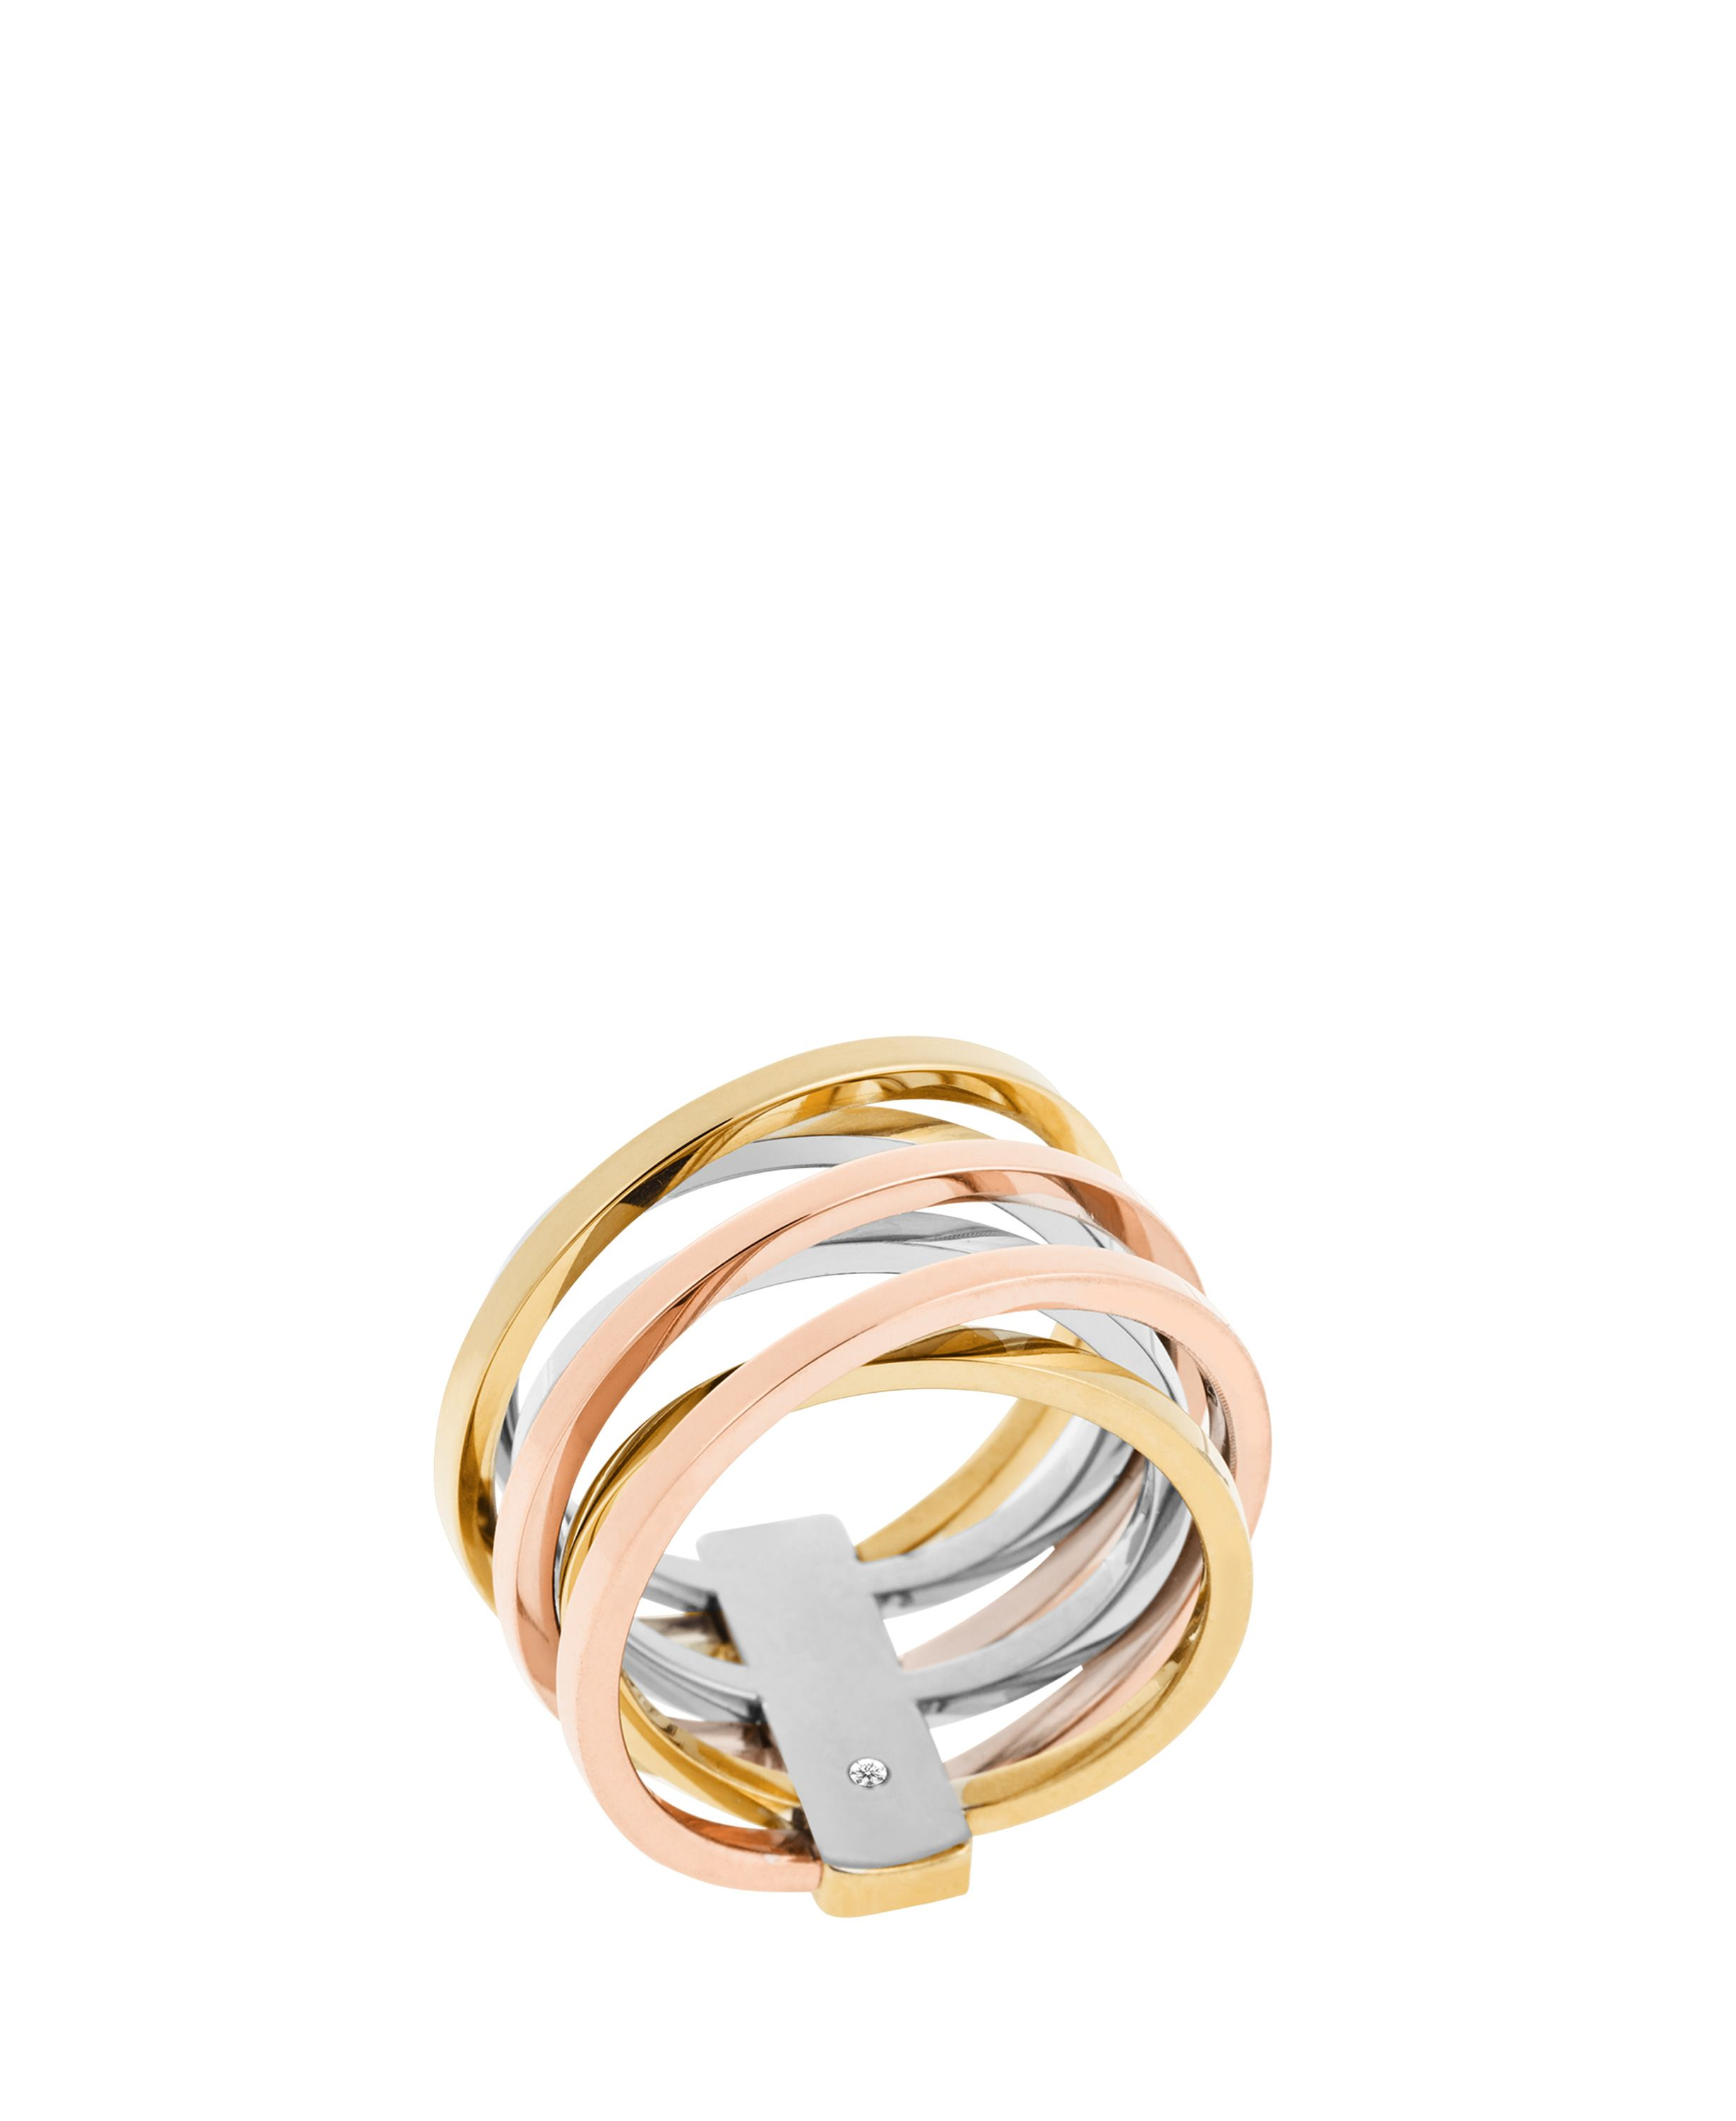 Michael Kors MKJ4421998 Ladies ring Metallic